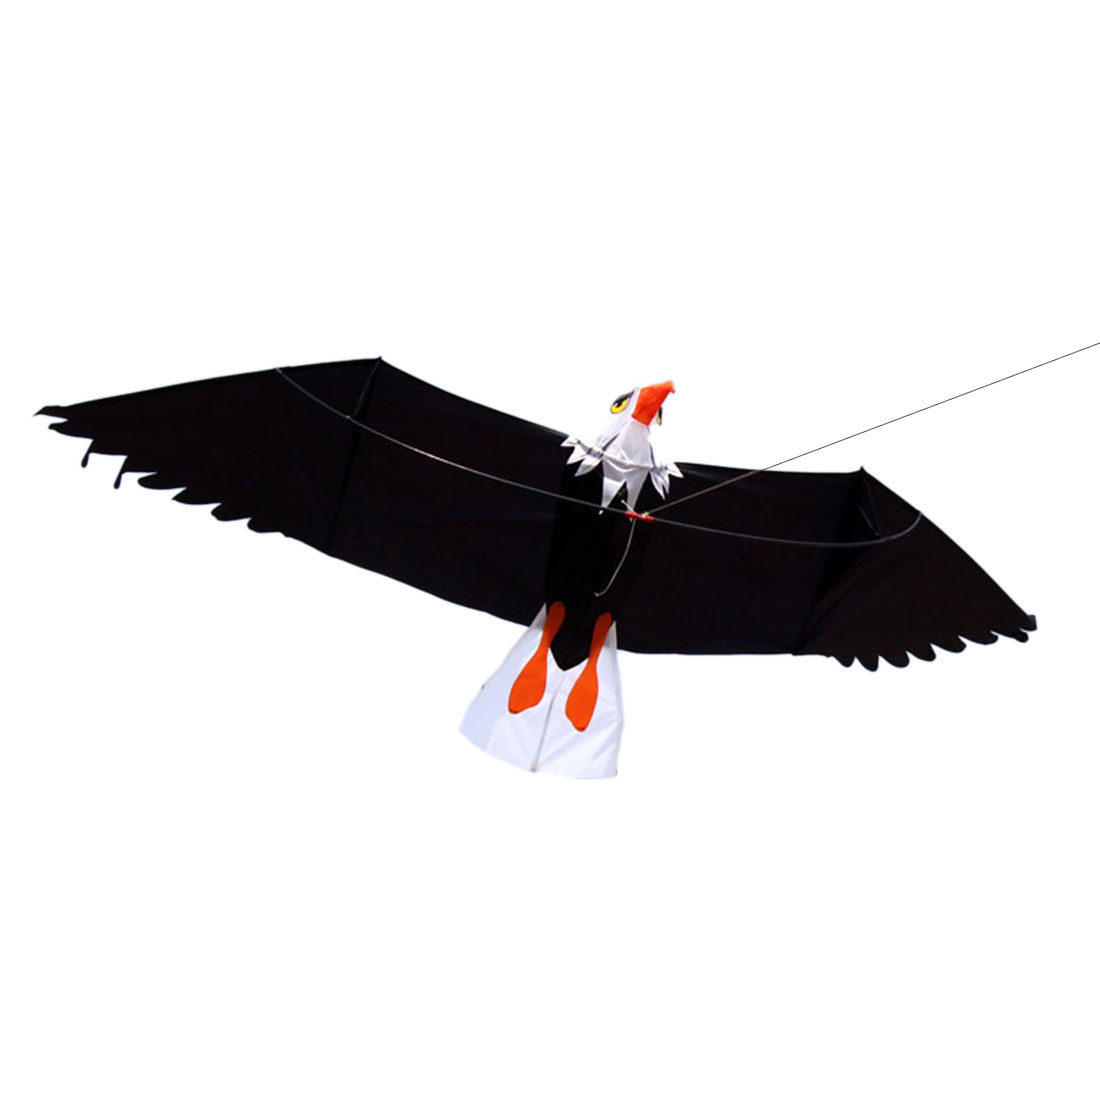 Buy Cheap Drop Shipping Summer Outddor Fun 3d Eagle Bird Kite Outdoor Sports Toy For Children Adult Creative Happy Holiday Gift